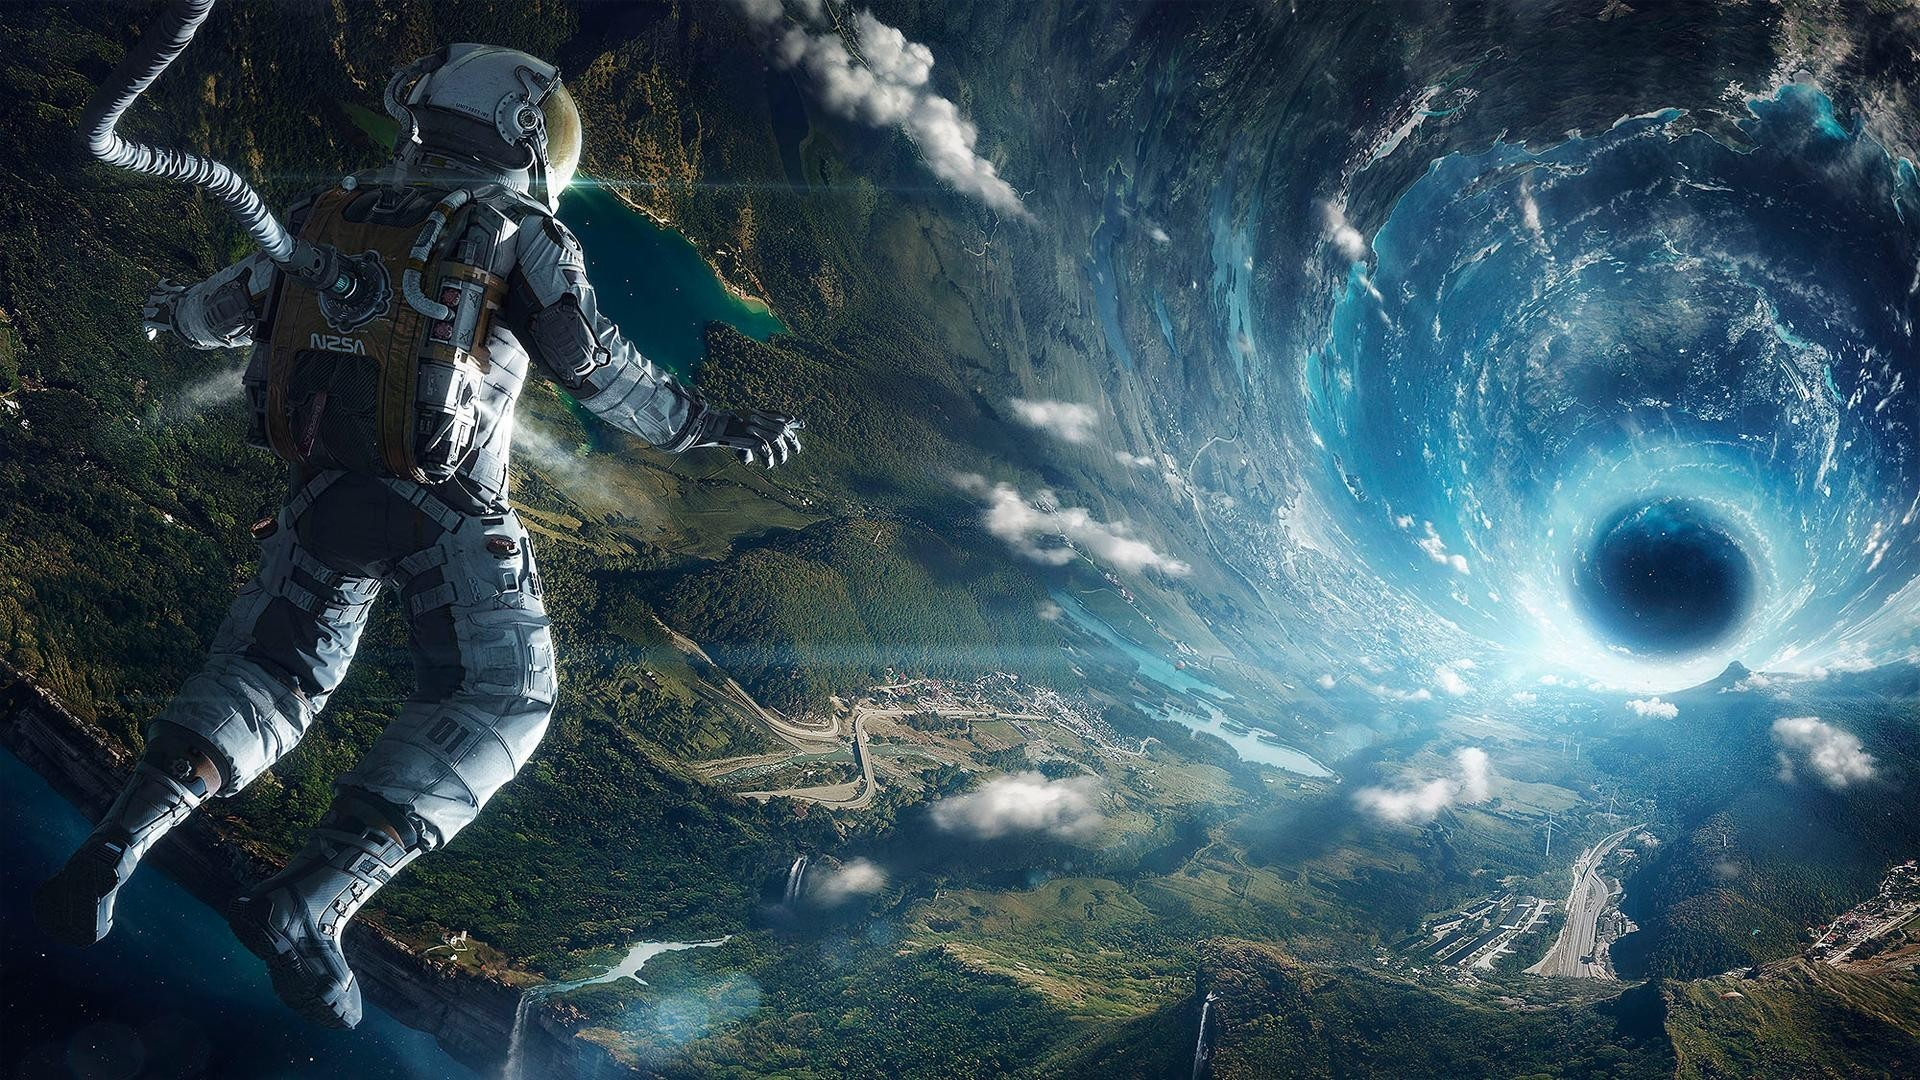 Load 39 more images Grid view. A collection I made of space wallpapers …